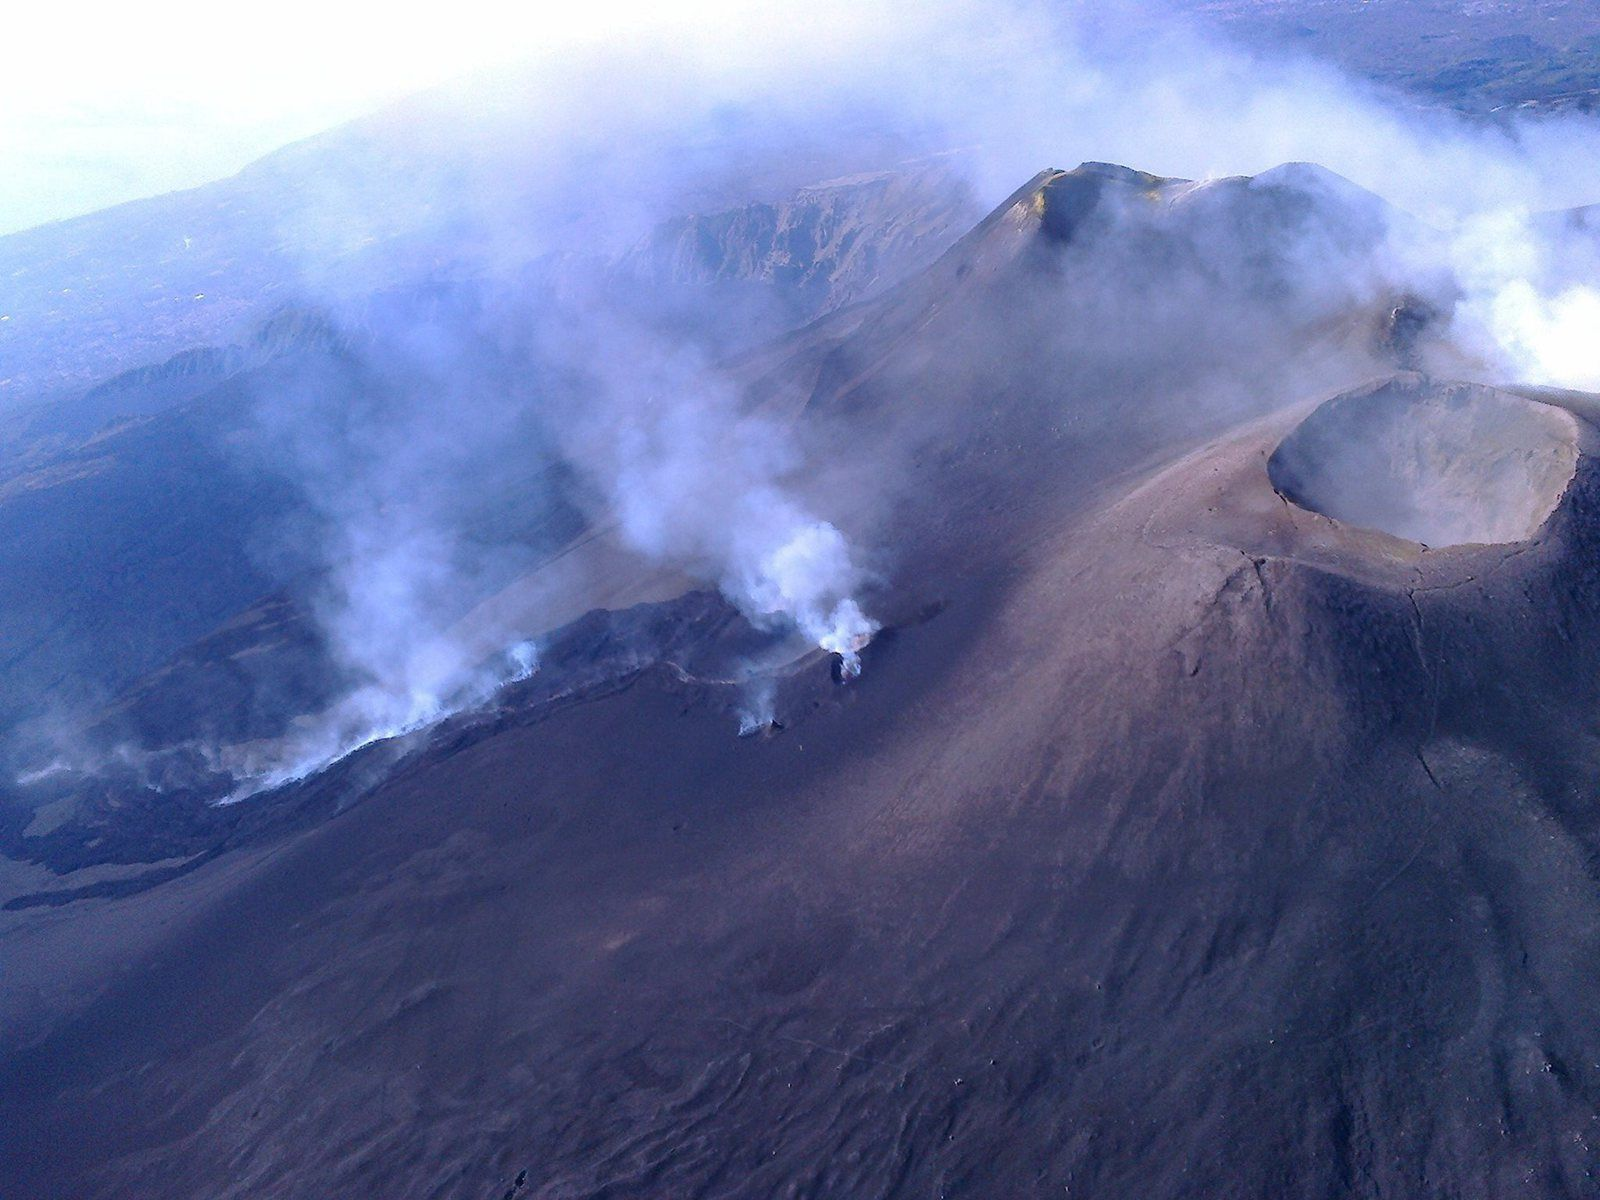 Etna northeast cone and eruptive fissure - photo Joseph Nasi